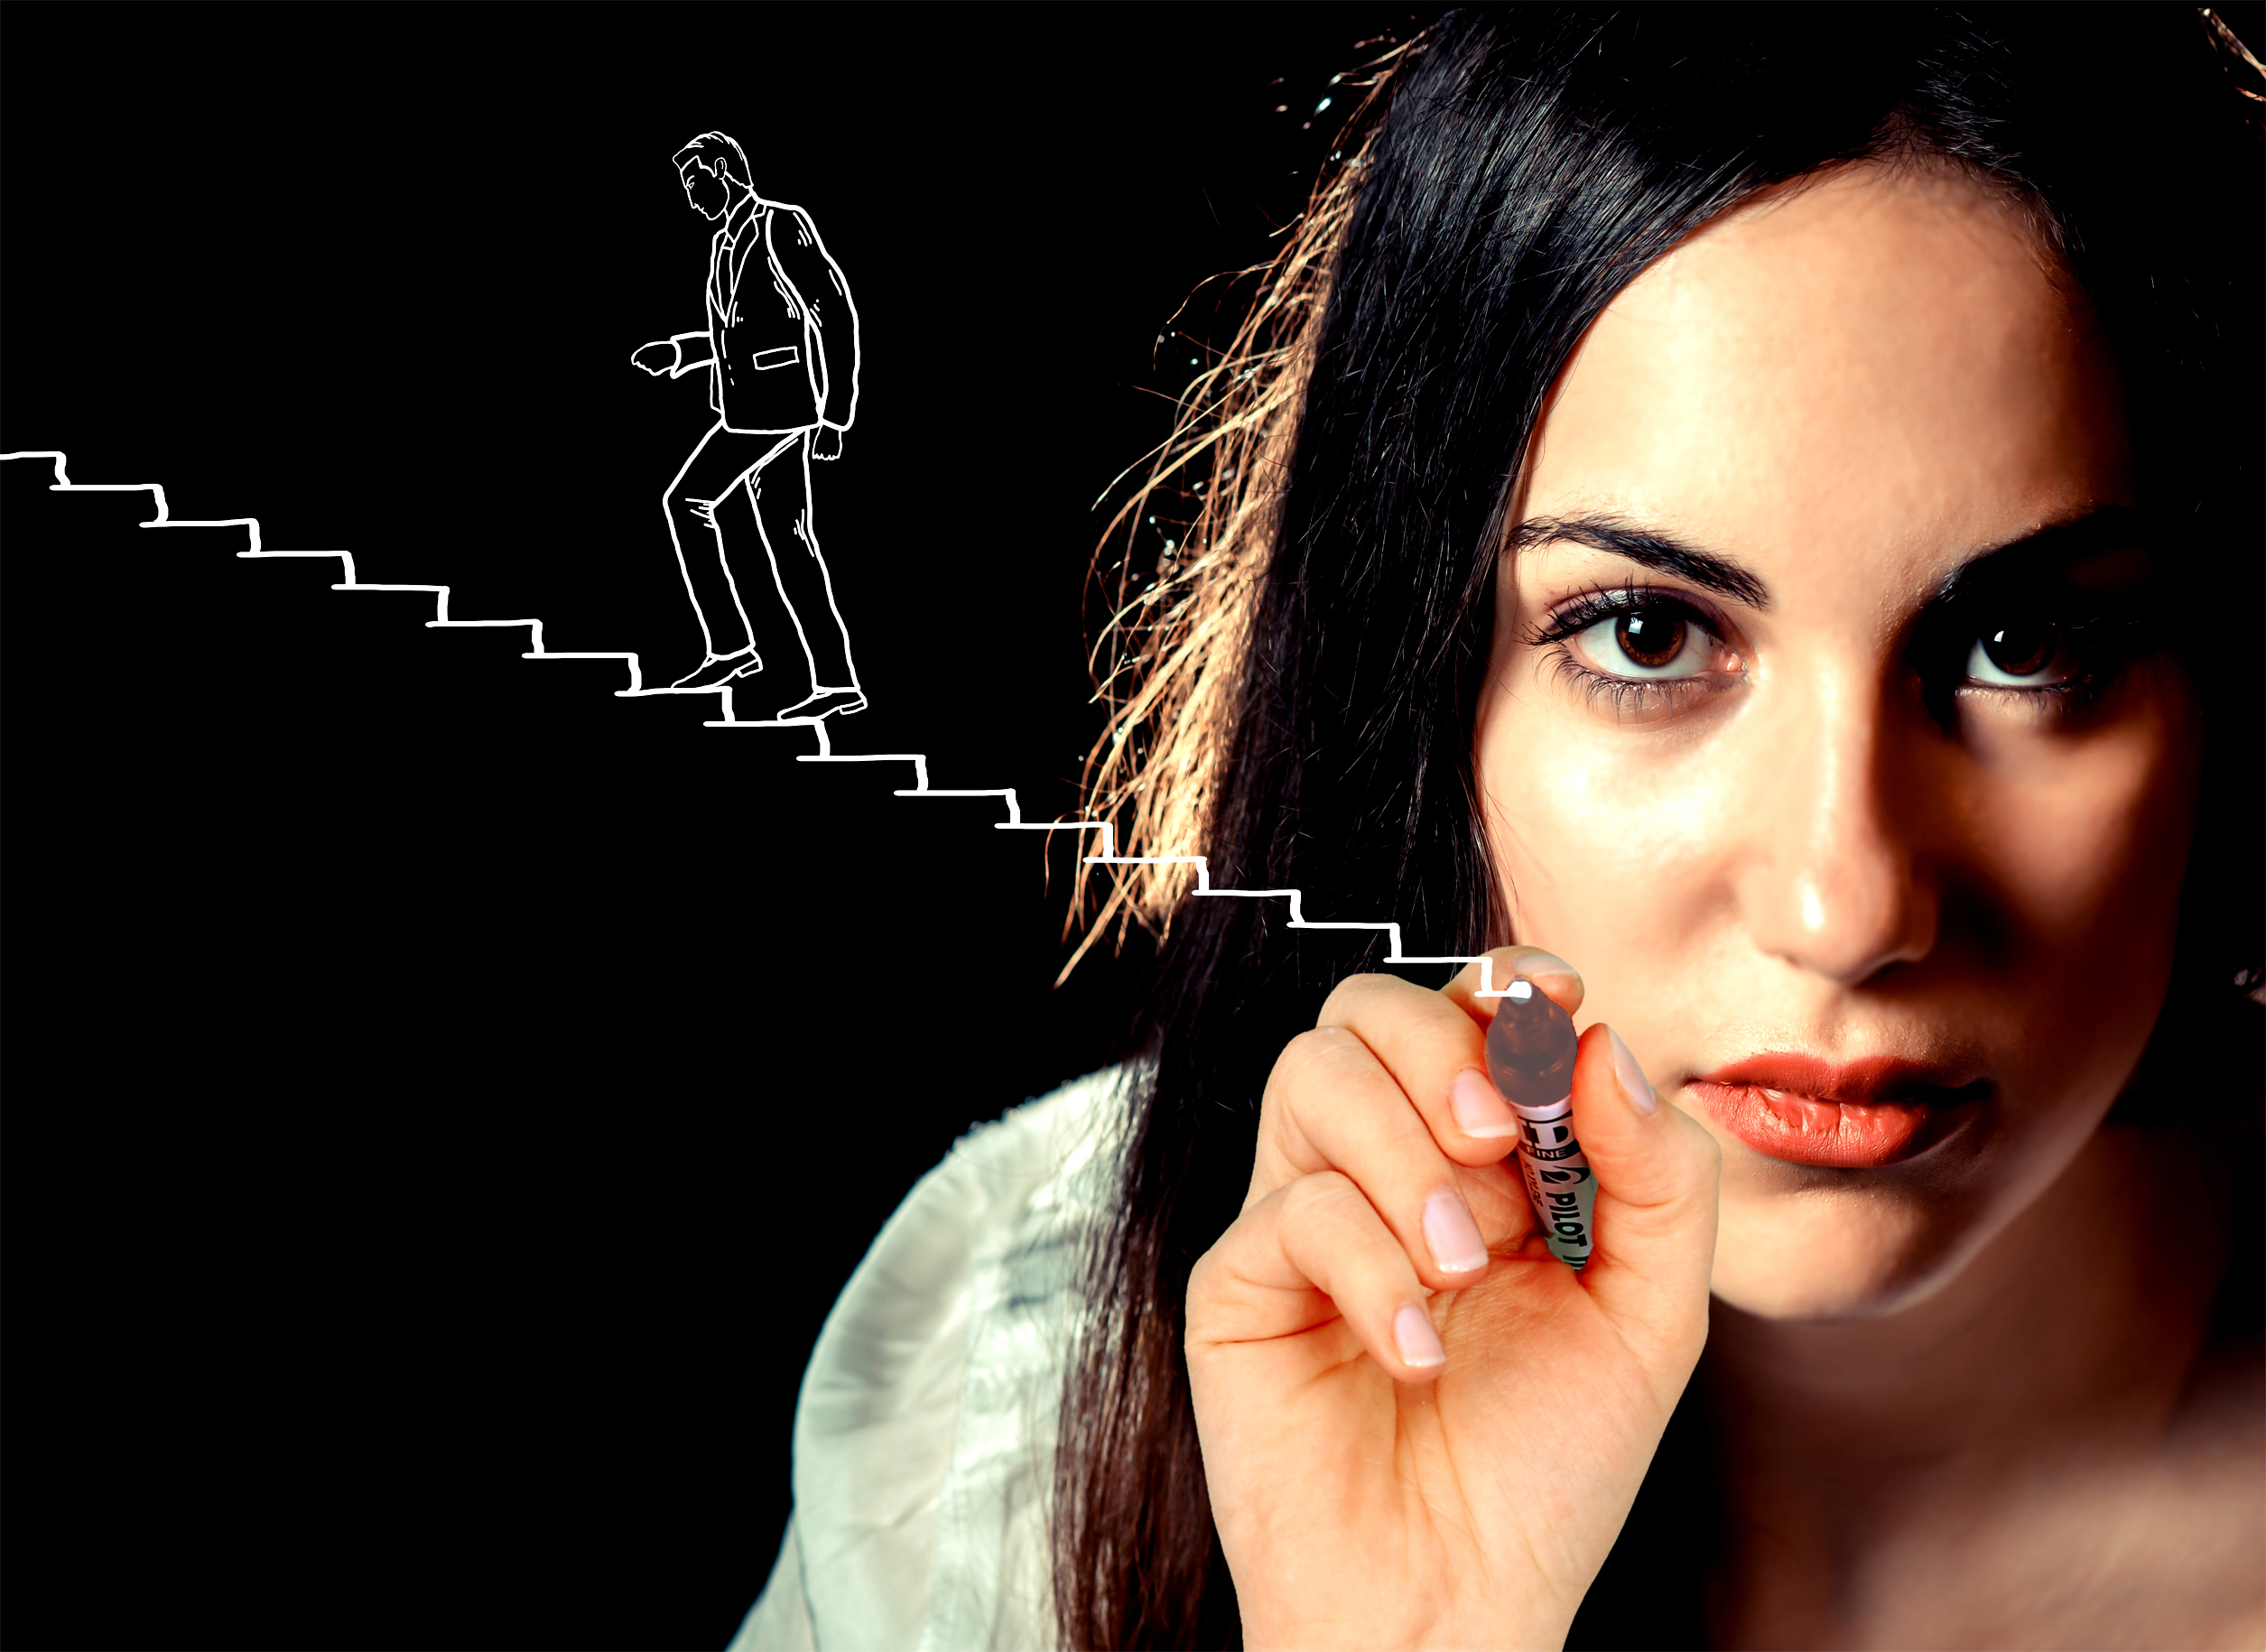 Woman sketching a businessman climbing stairs photo